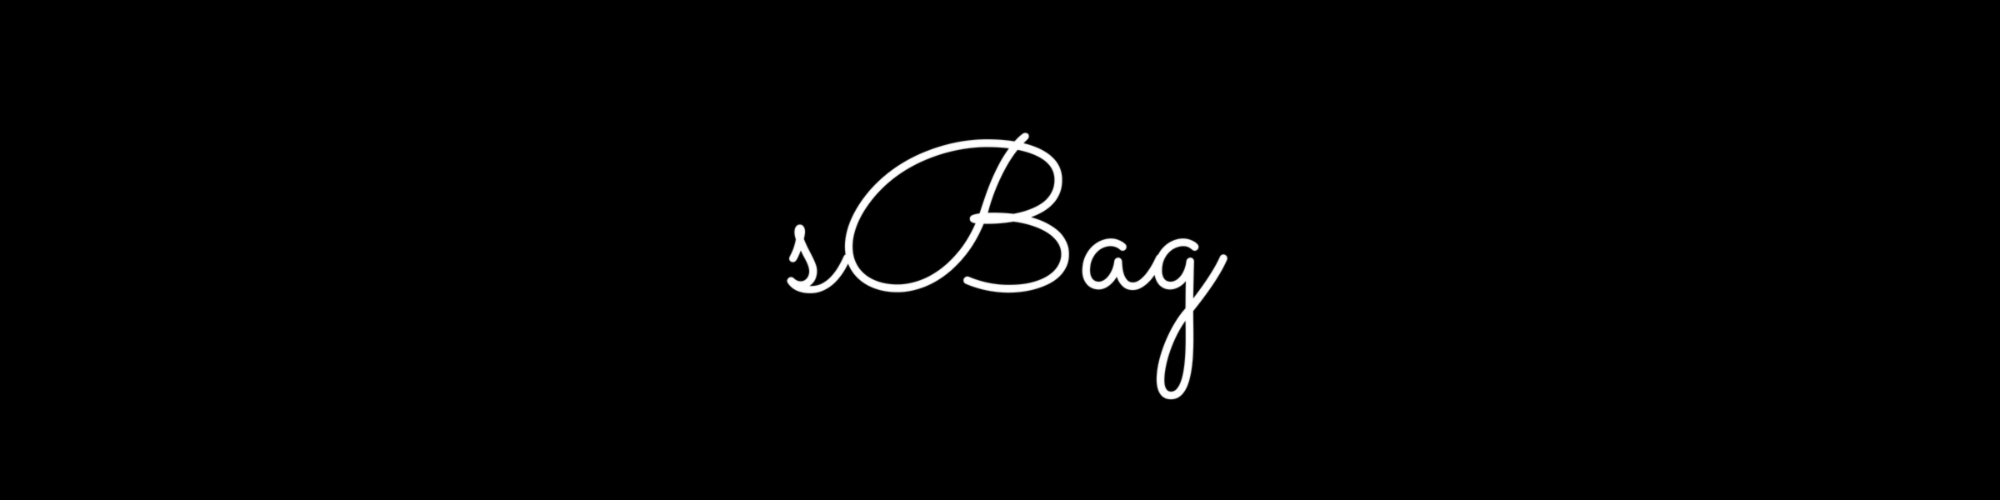 Showroom - sbag-designs